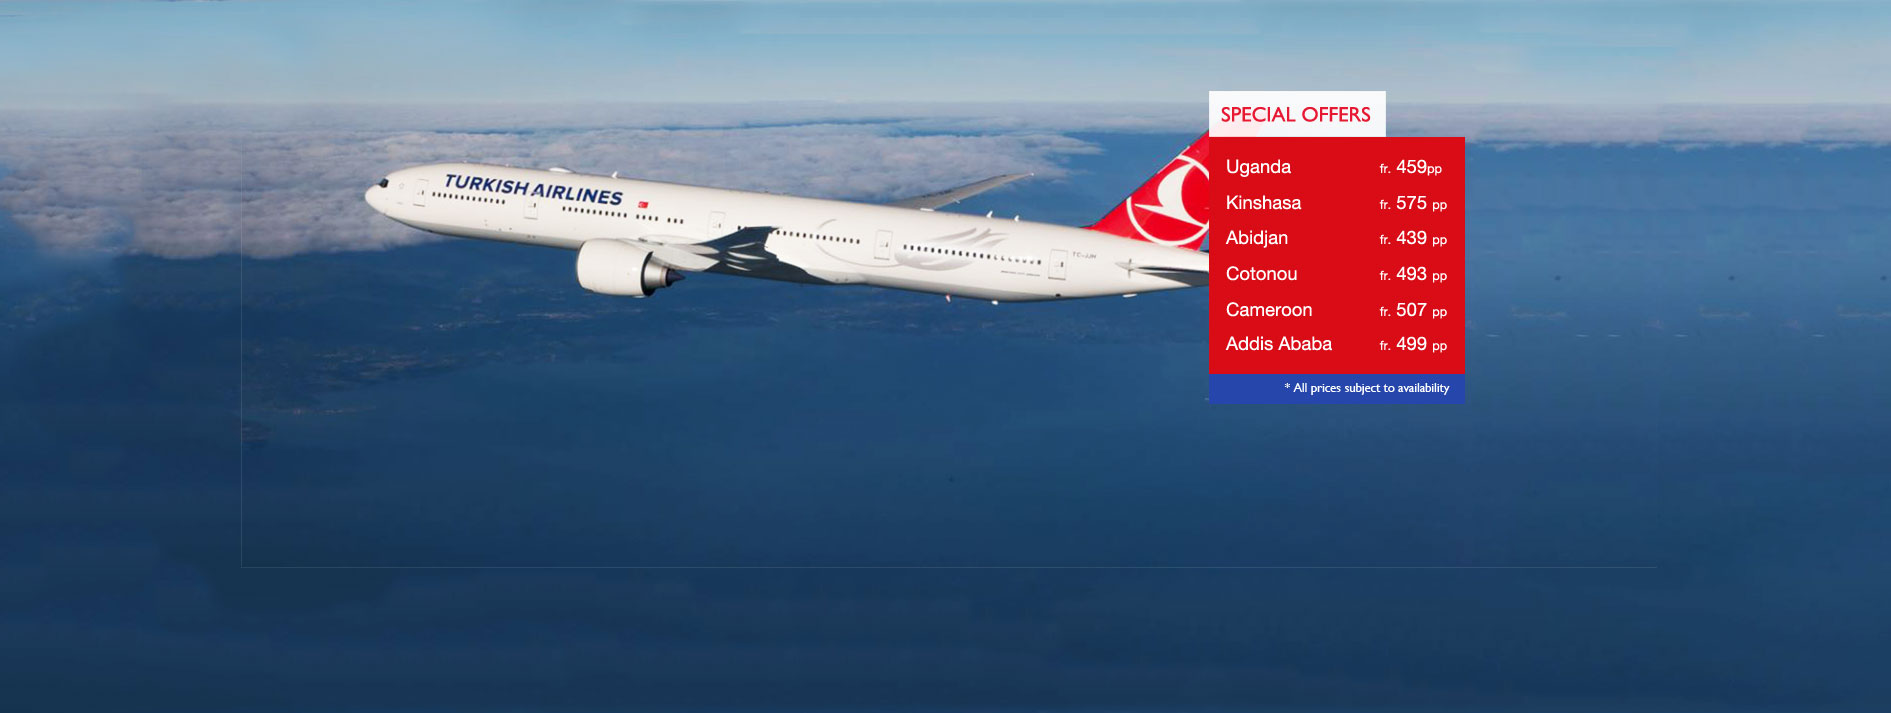 Turkish Airlines Special Offers